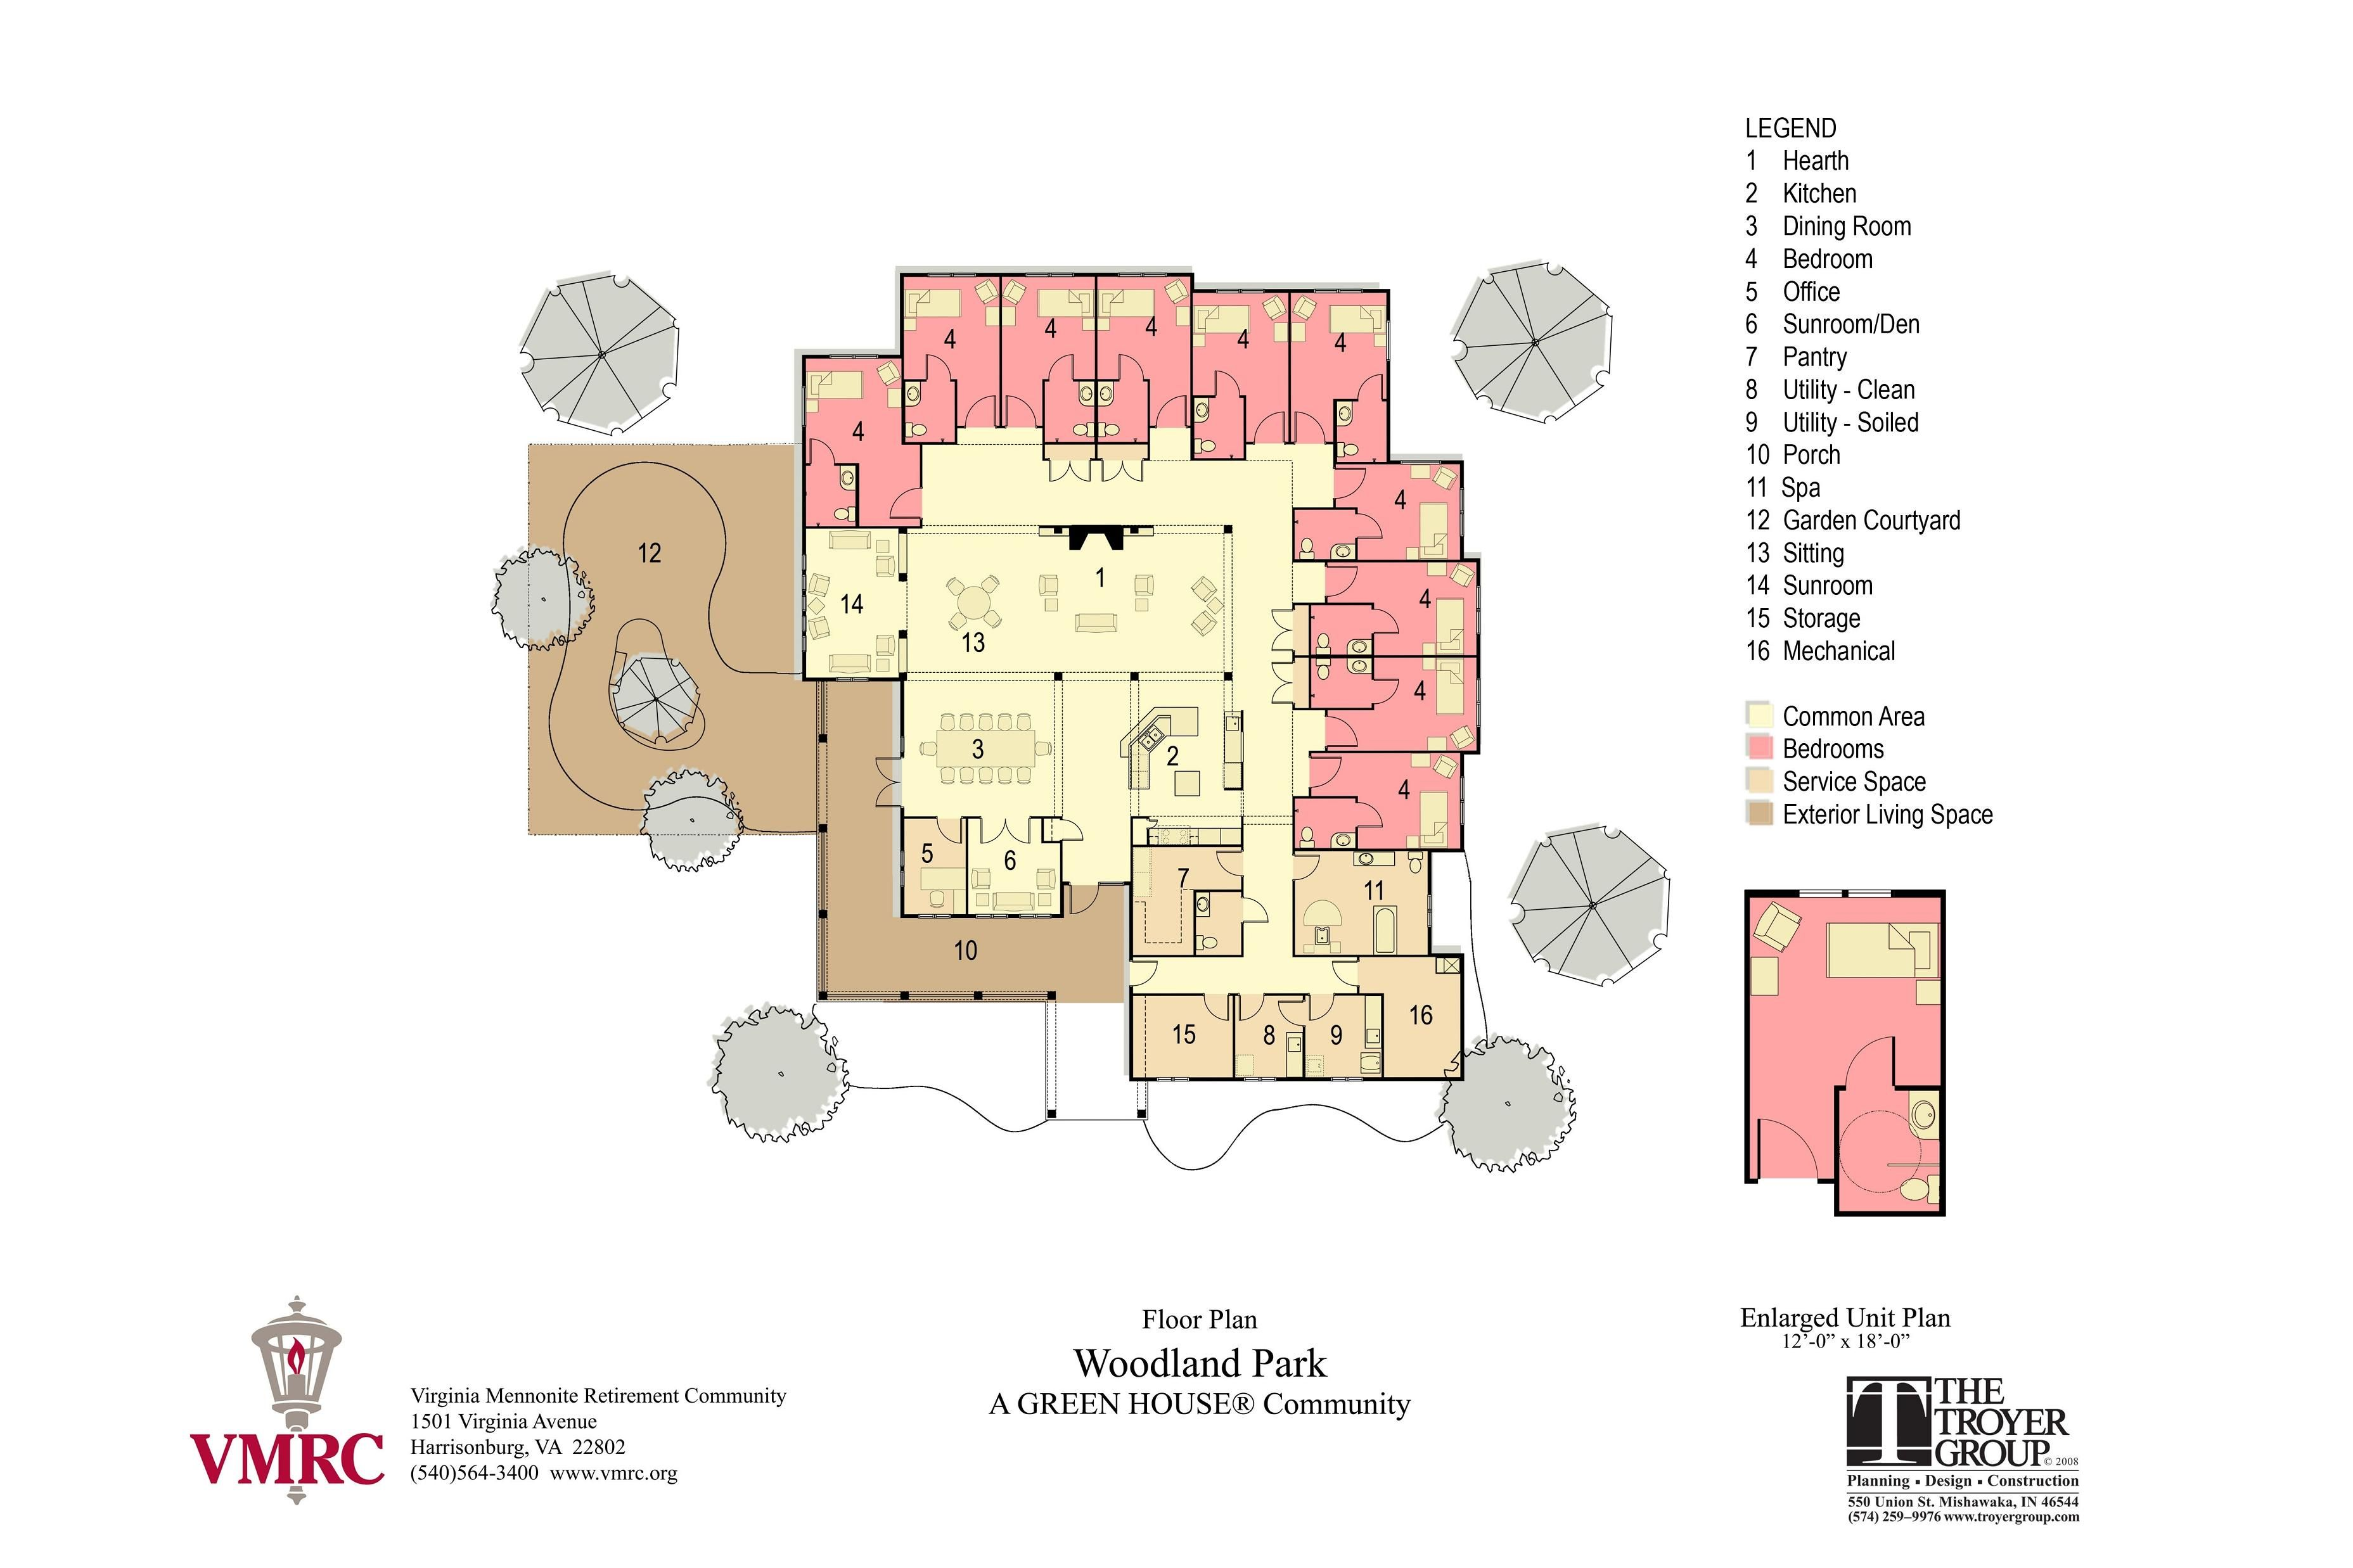 floor plan samples hospice google search hospice design floor plan samples hospice google search